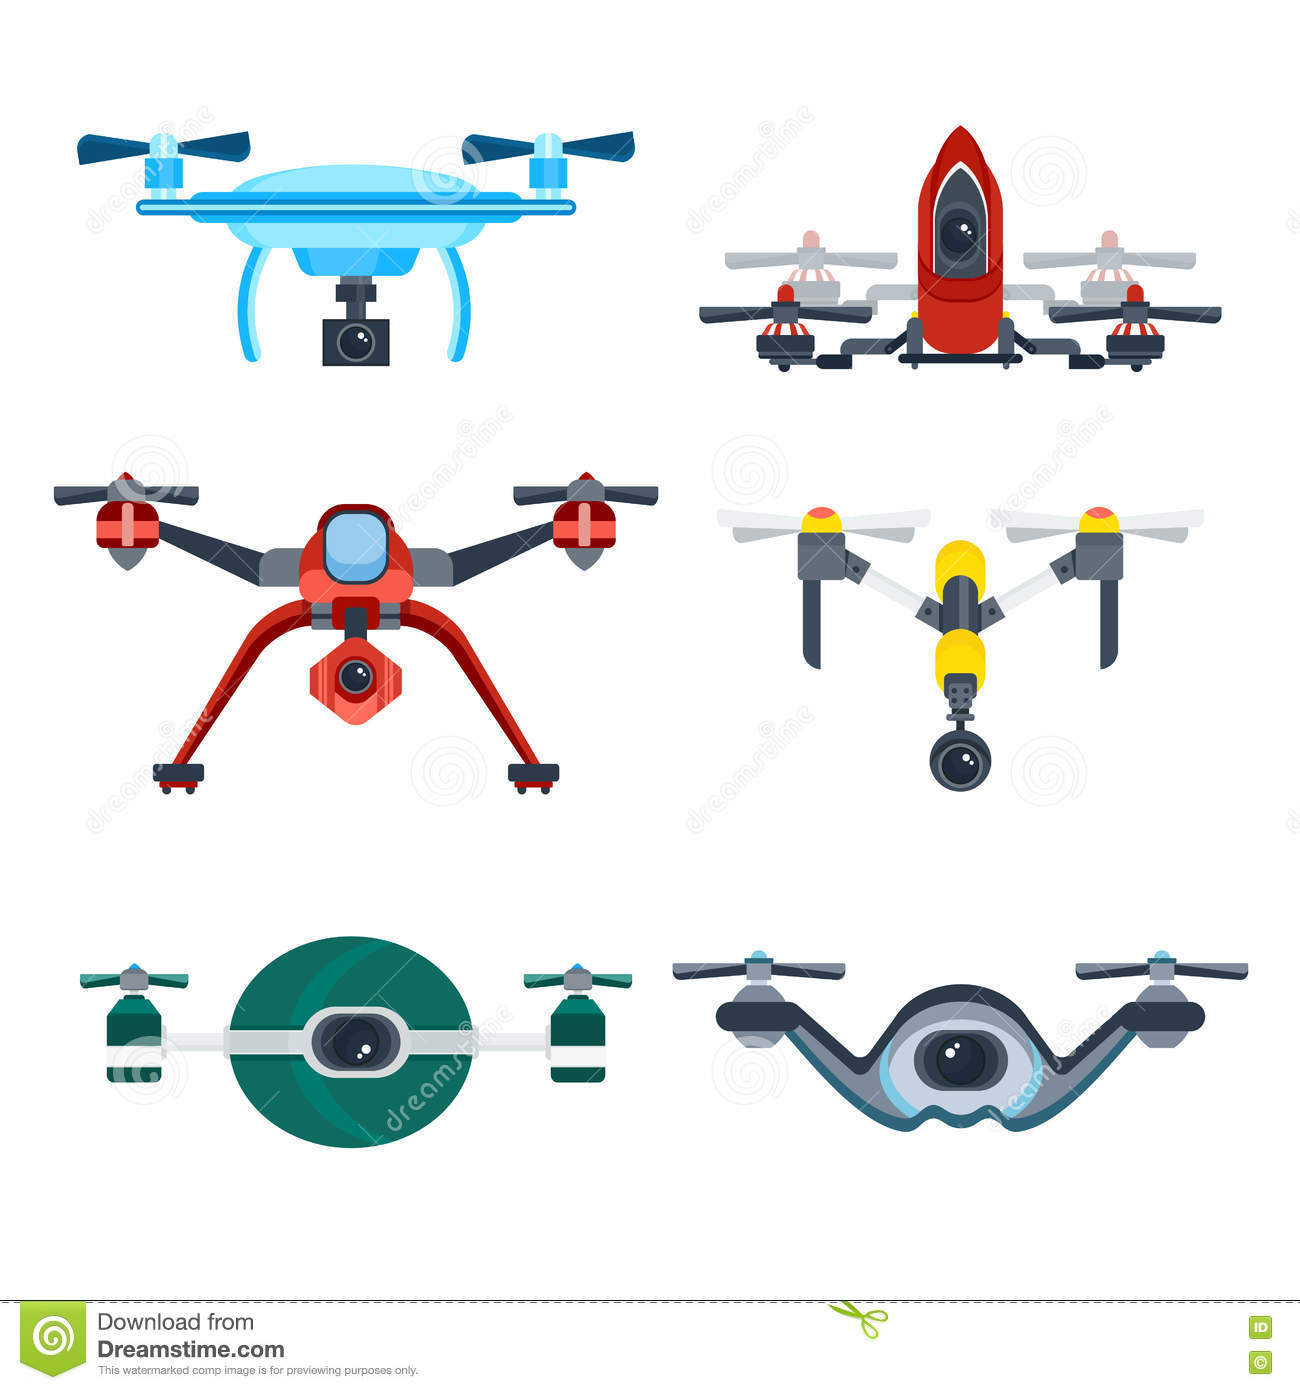 best quad helicopter with Drone Icon Quadrocopter Video Camera on Drone Icon Quadrocopter Video Camera in addition Remote Control Quadcopter Drone further 1901433 32591623094 further Hawequas Mountains Cape Winelands Western Cape South Africa additionally Spacecraft Cross Sections And Cutaways From W3 351295701.